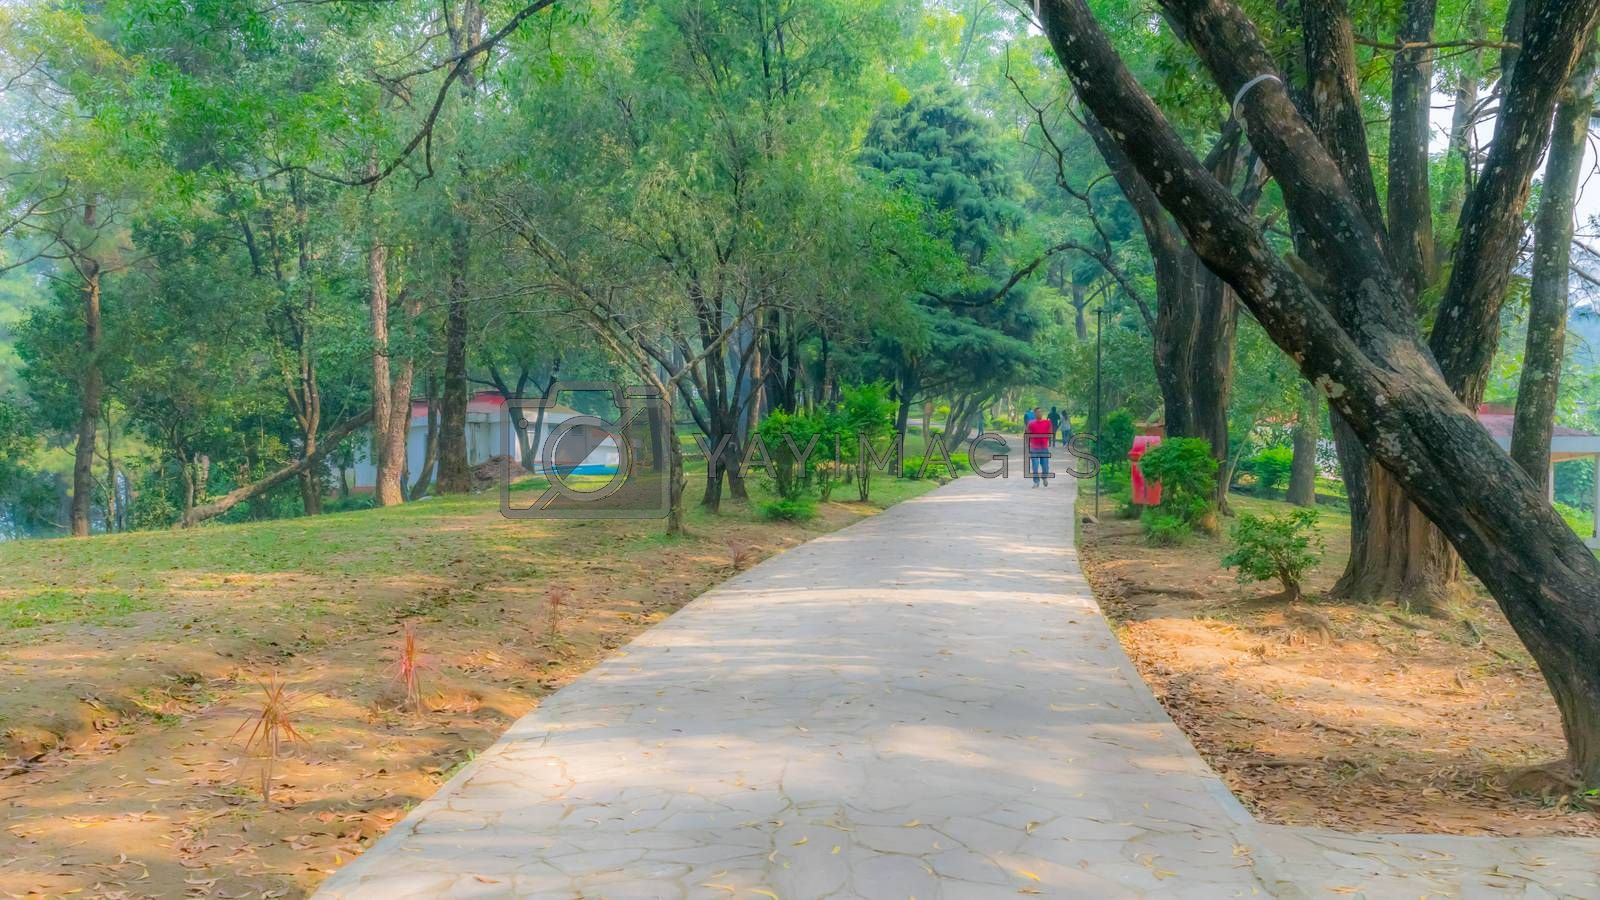 An Early Evening in city park, bright sunlight and shadows, summer season, beautiful landscape. Central Park Late Morning Kolkata. Contrast of dark trunks with green leaves and grass is breathtaking.